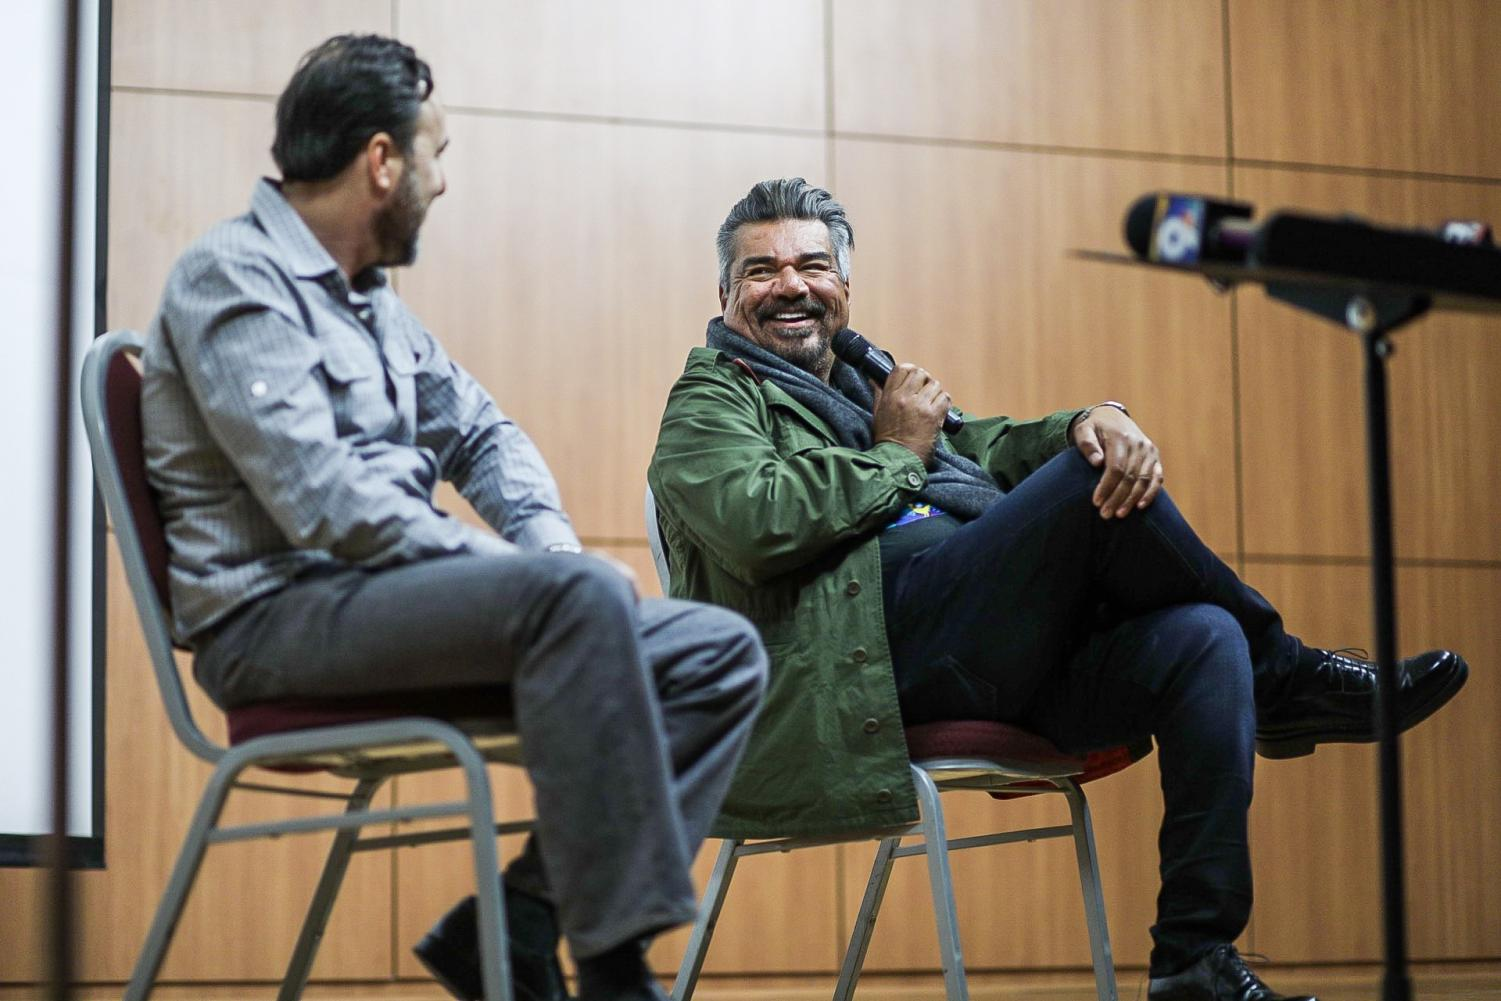 George Lopez's visit Thursday brought business student Alexander Gardea a shot at performing his comedic talent.